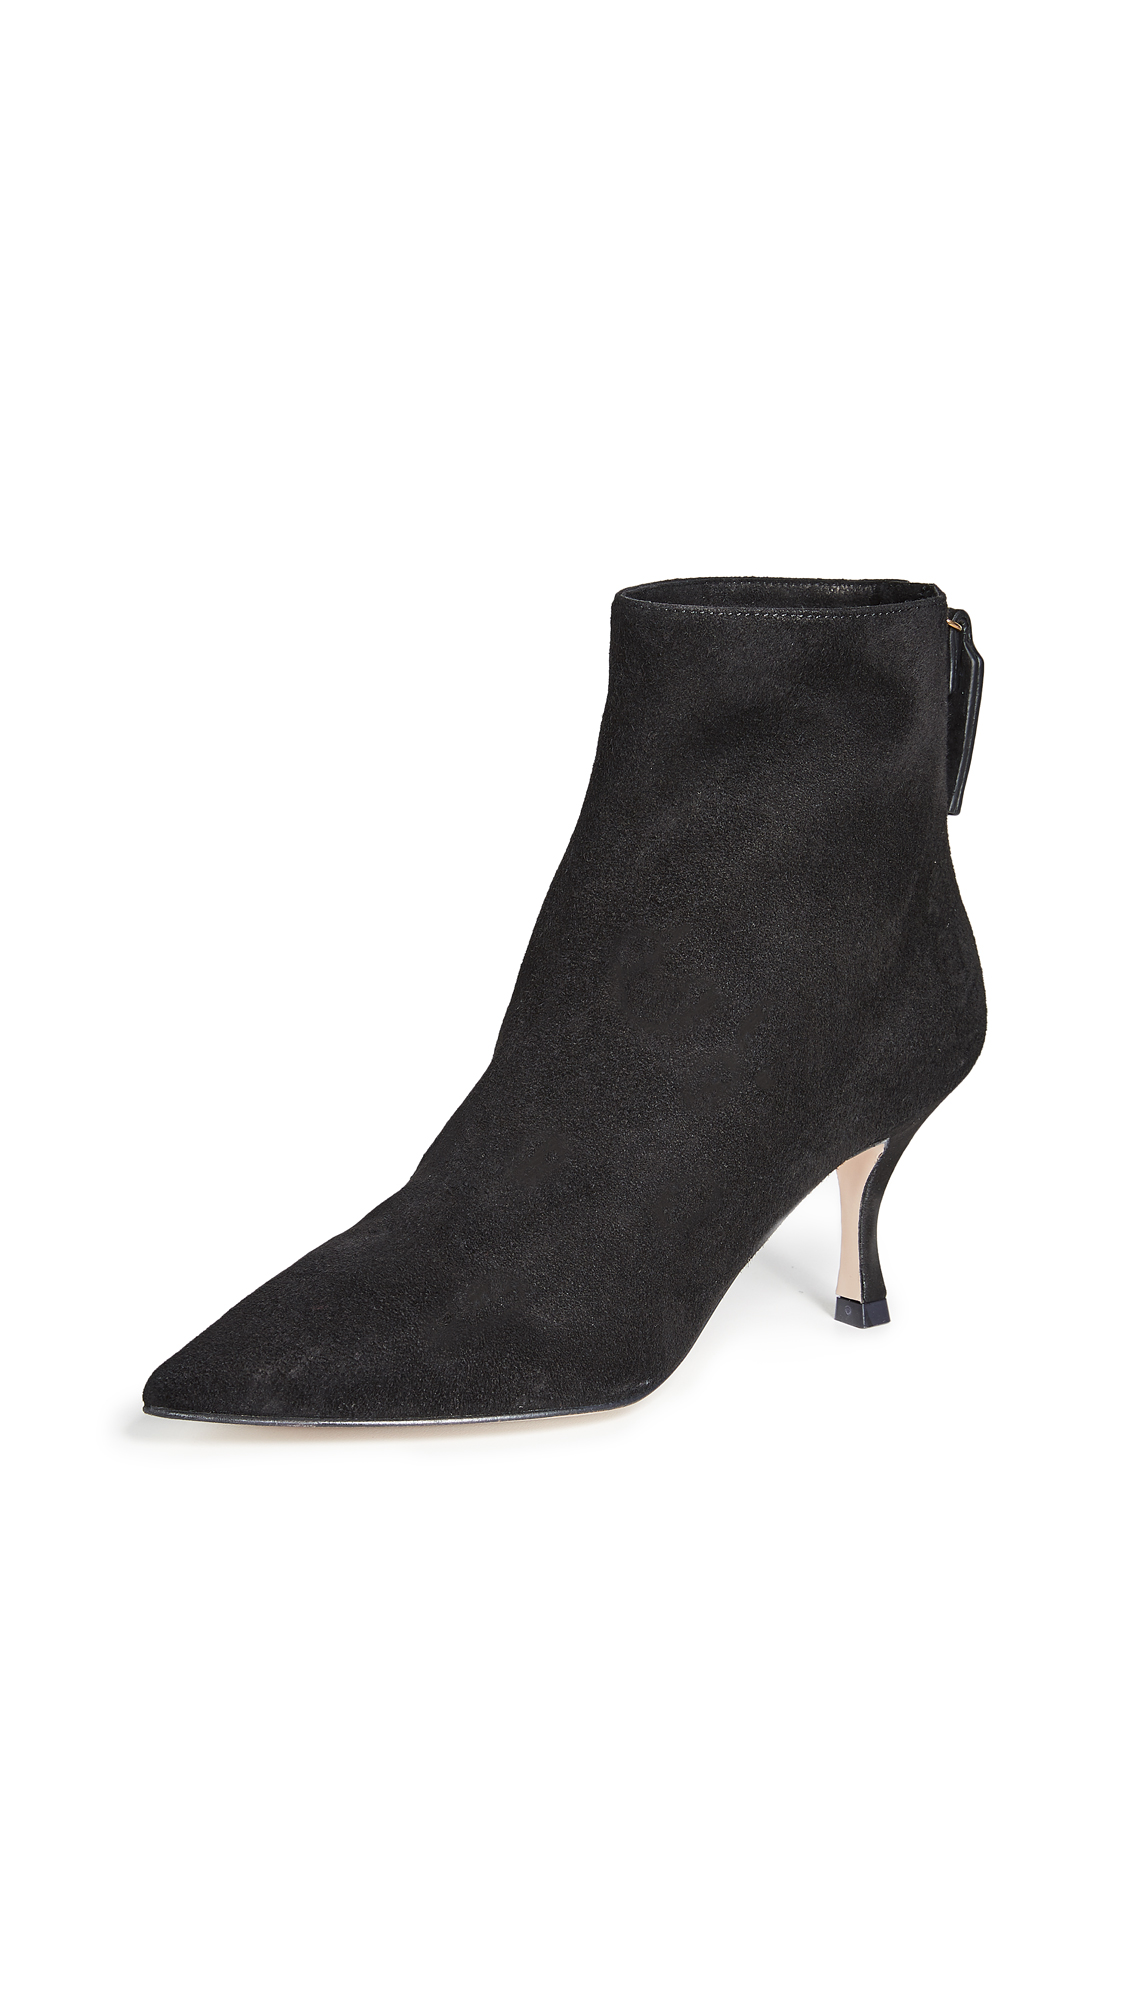 Stuart Weitzman Juniper 70mm Booties - Black